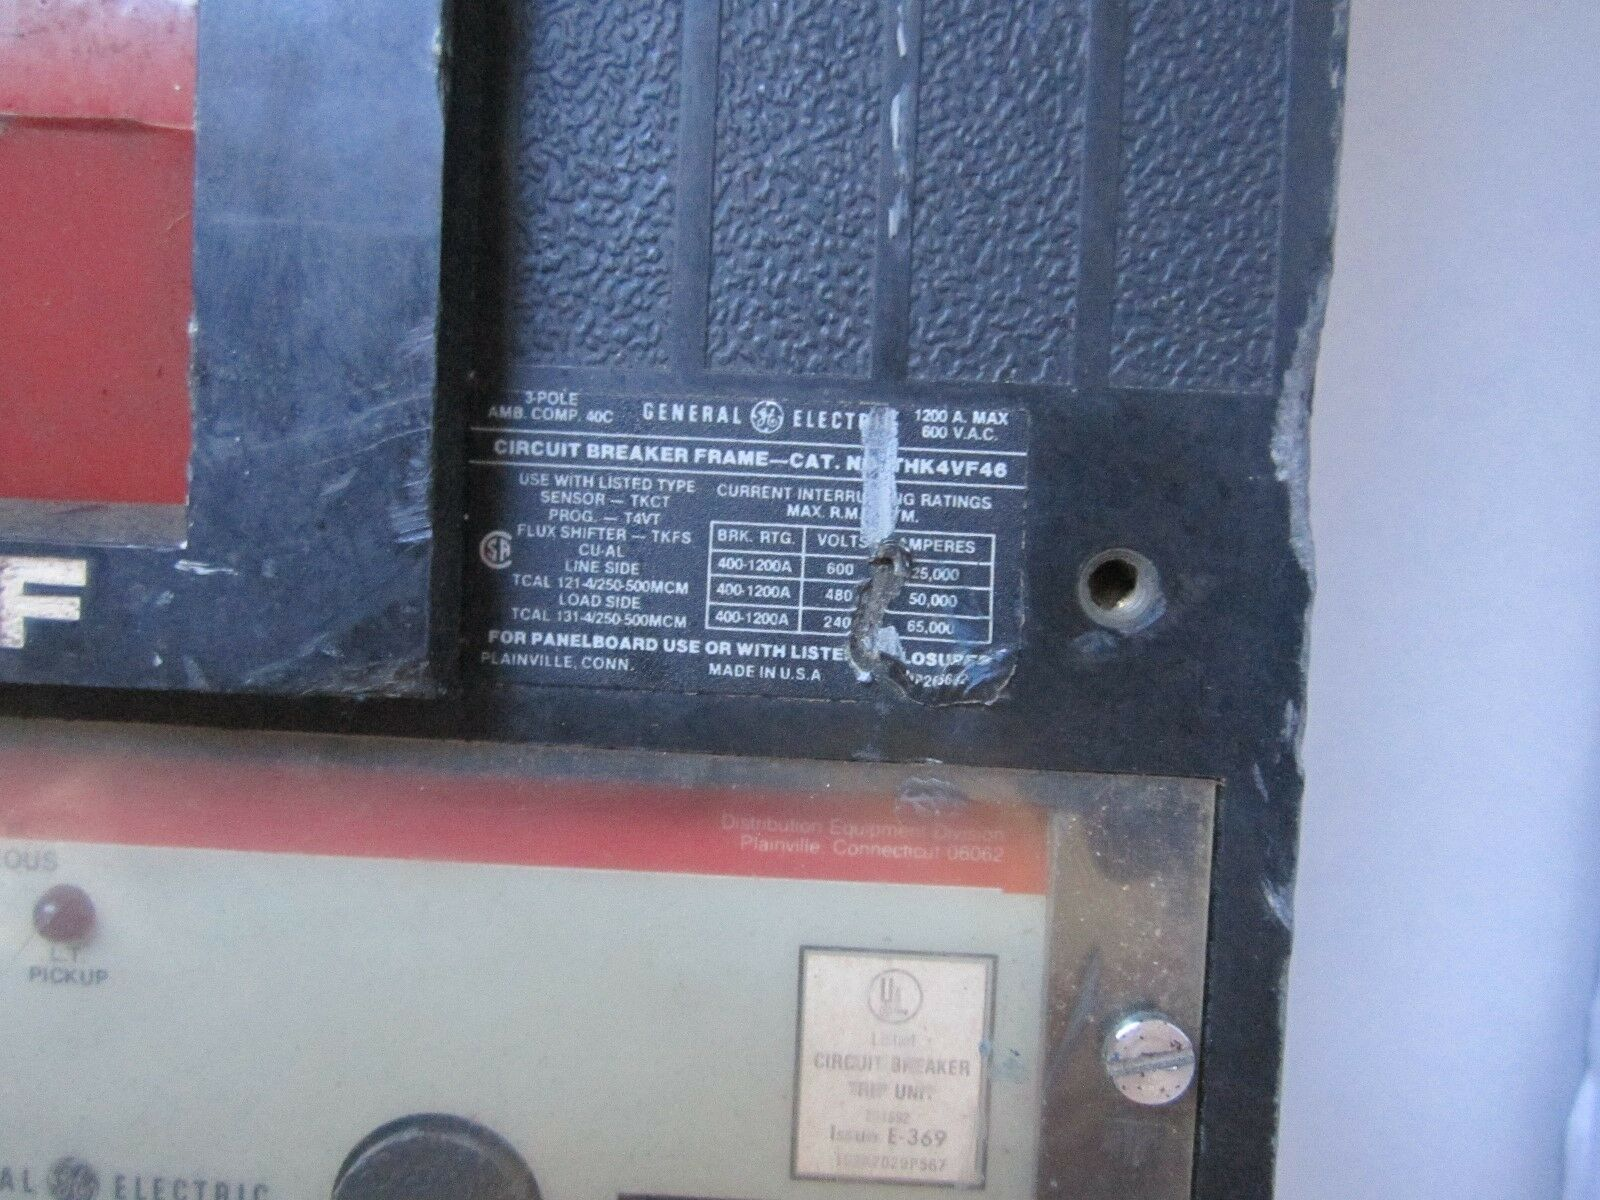 Ge Thk4vf46 Circuit Breaker 1200 Amp 600 Vac 3 Pole With 800a Versa Used Breakers Sgda32at0400 400 Trip T4vt Ebay